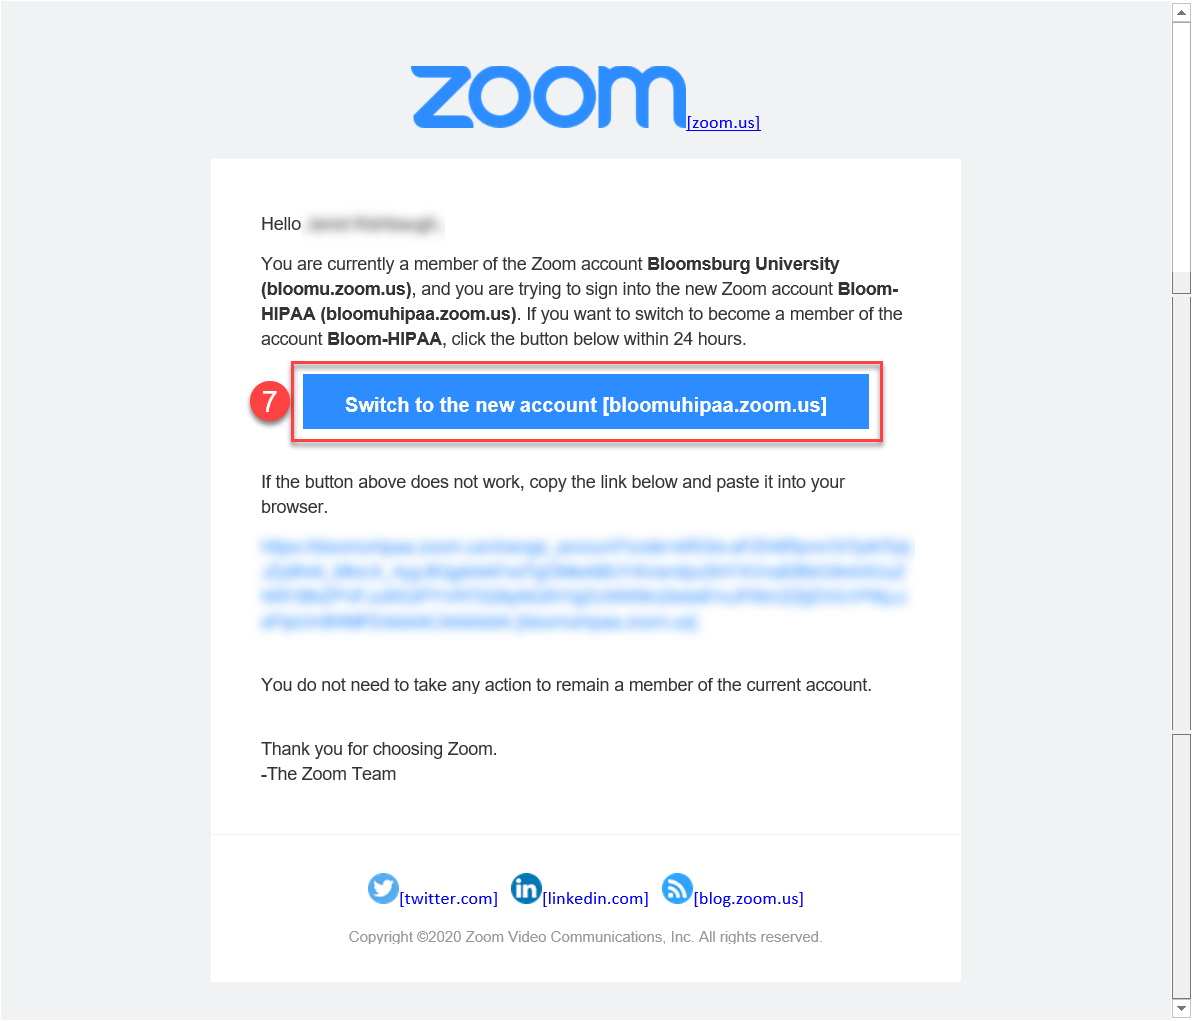 Zoom switch account email with option to switch to the new account highlighted.